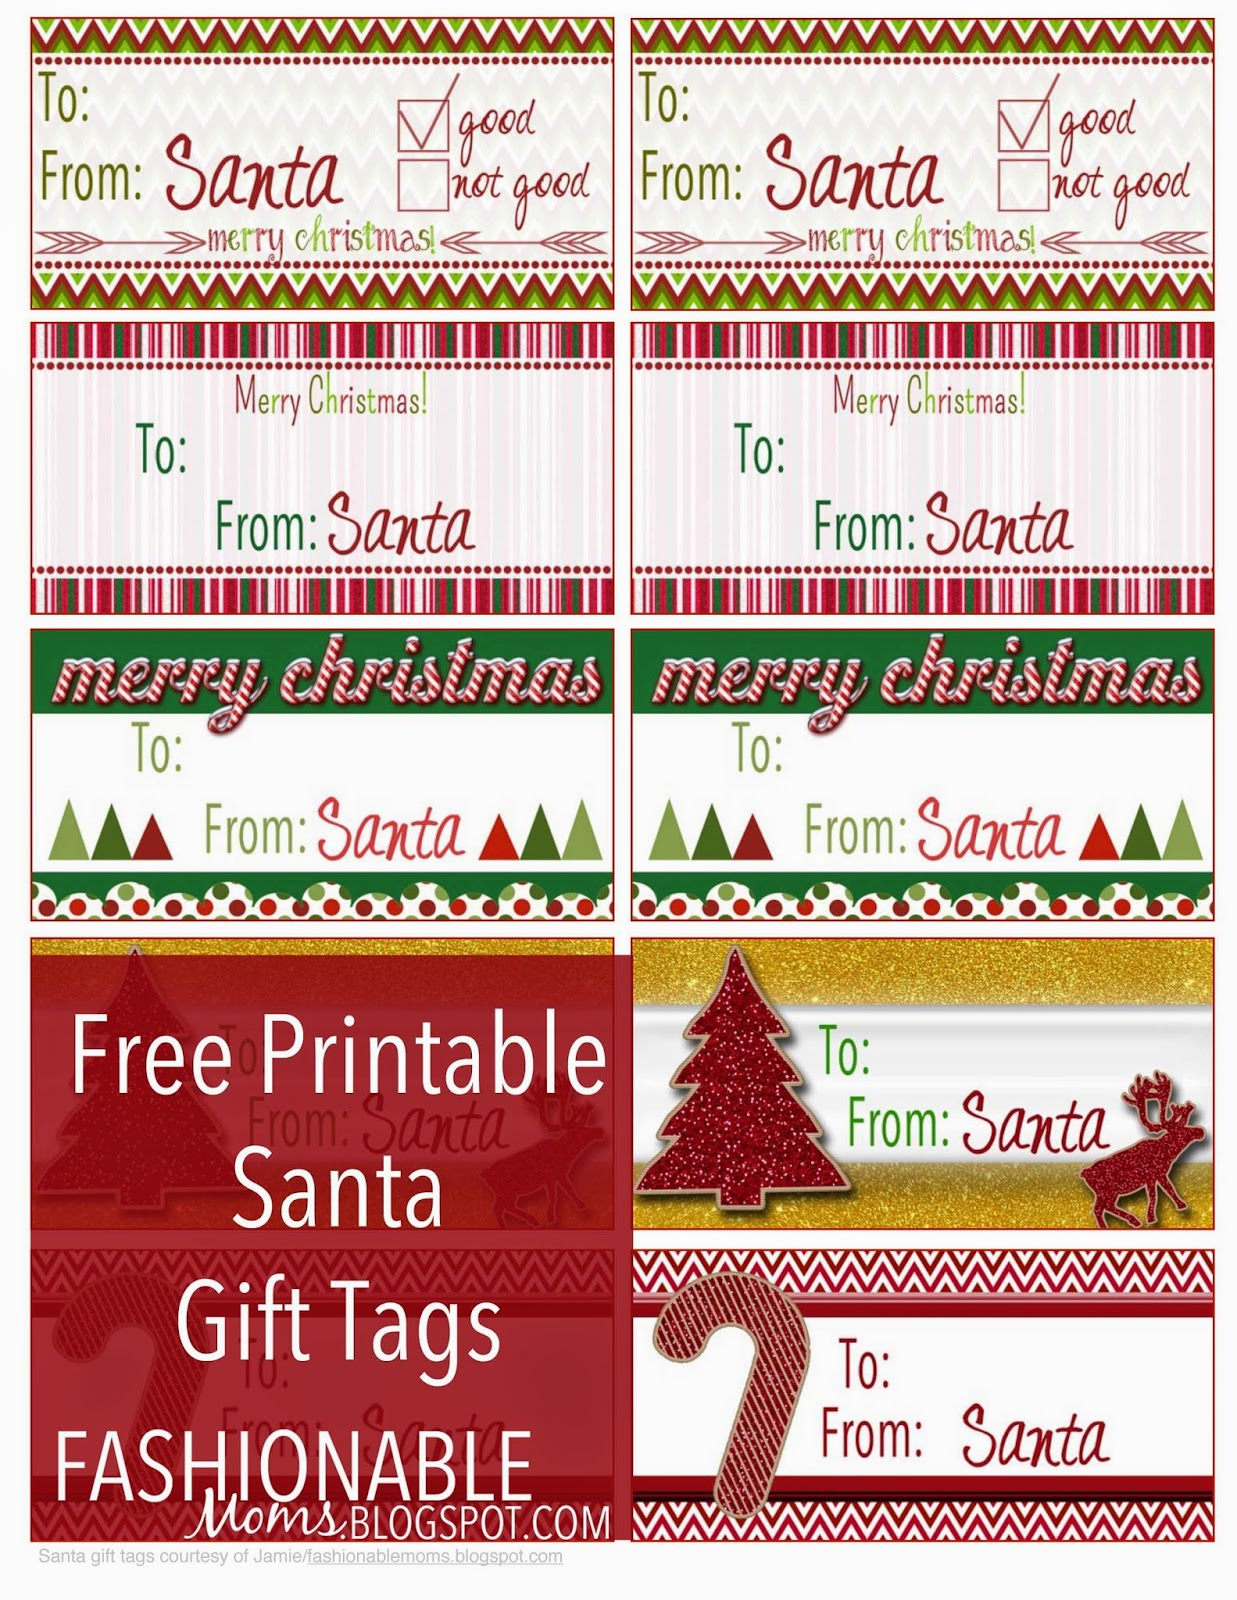 My fashionable designs december 2014 free printable santa gift tags negle Choice Image